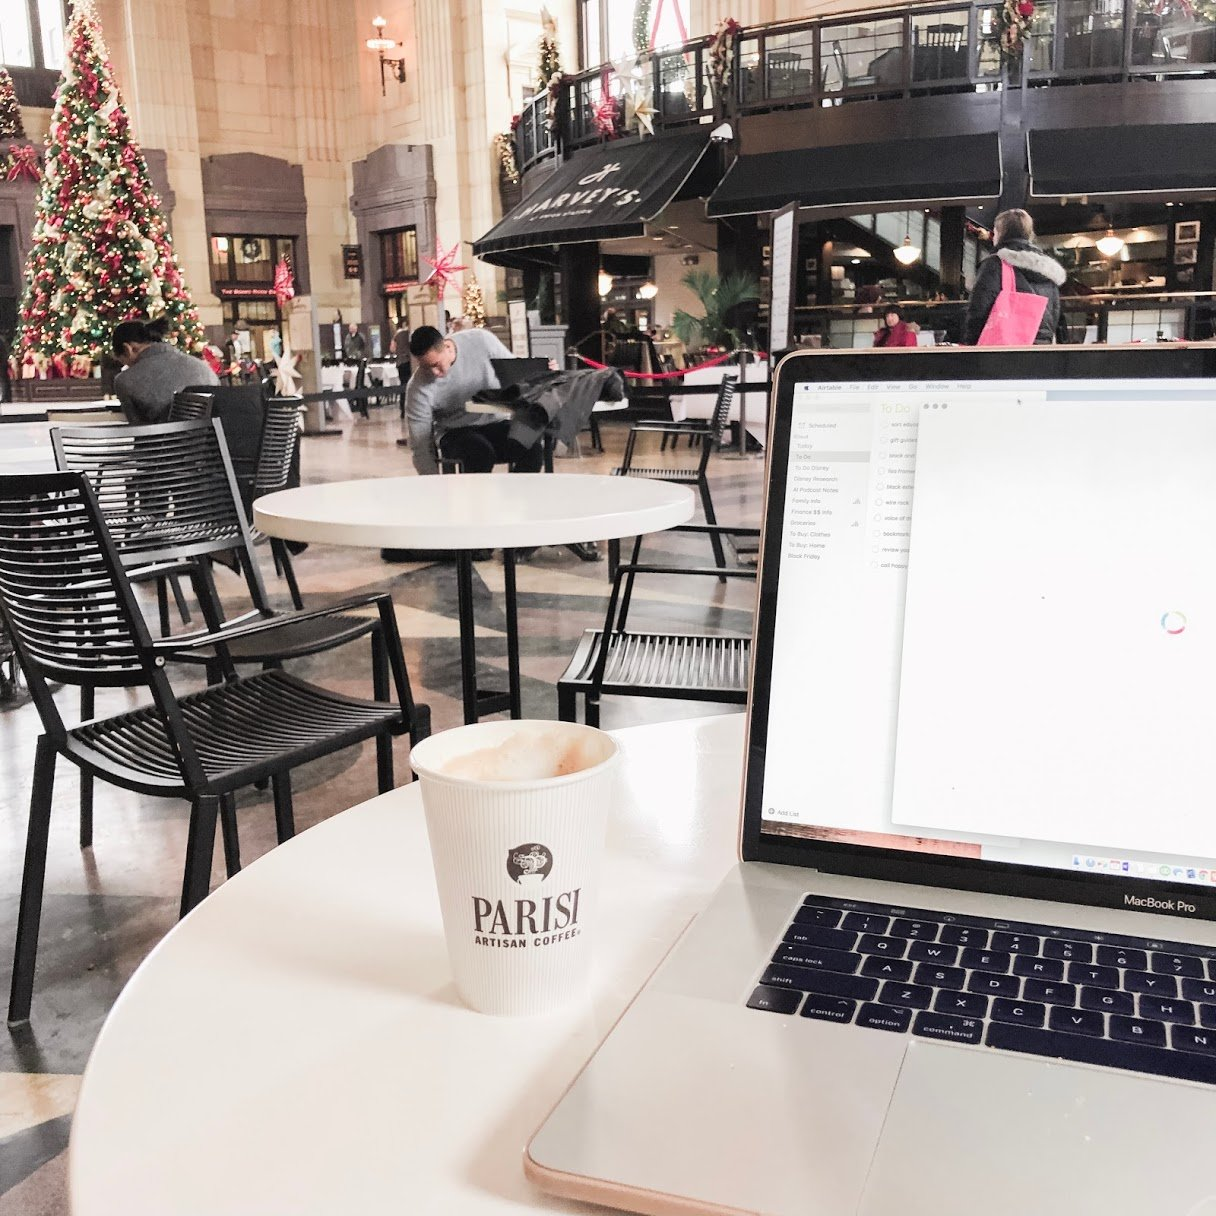 breakfast at union station - things to do in kansas city with kids